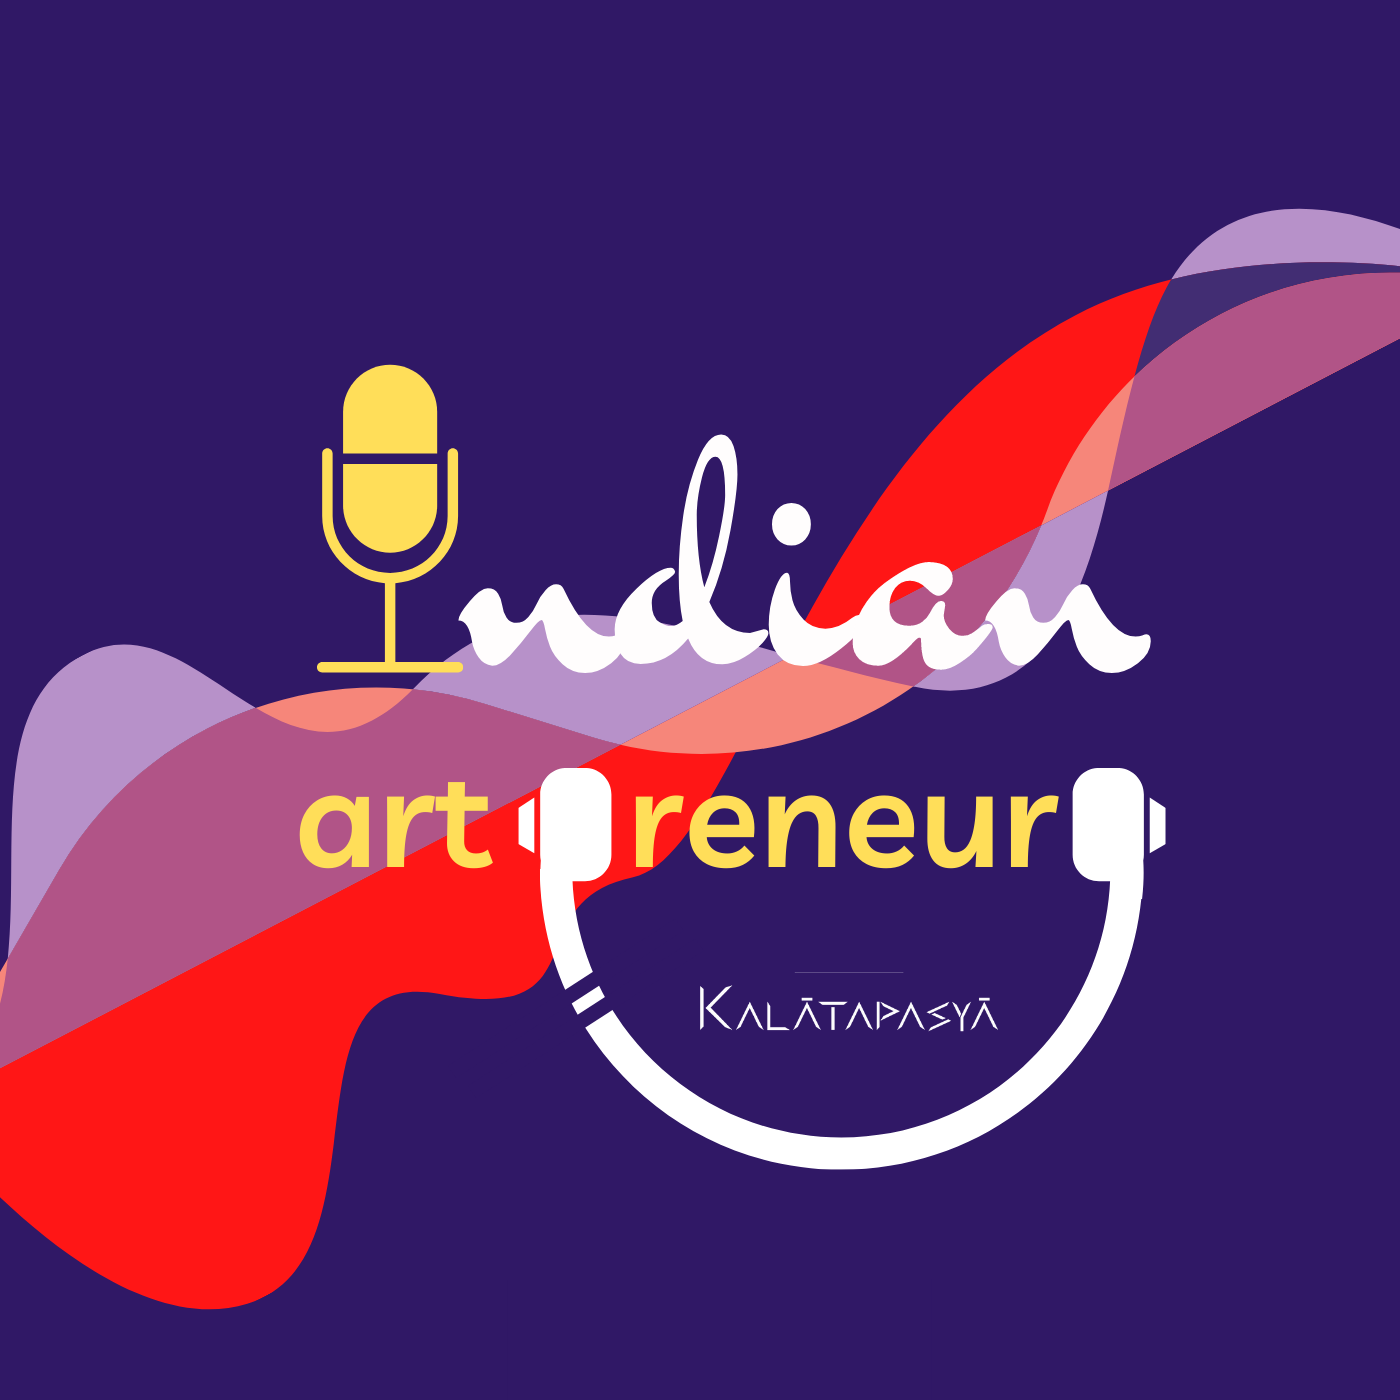 Indian Artpreneur